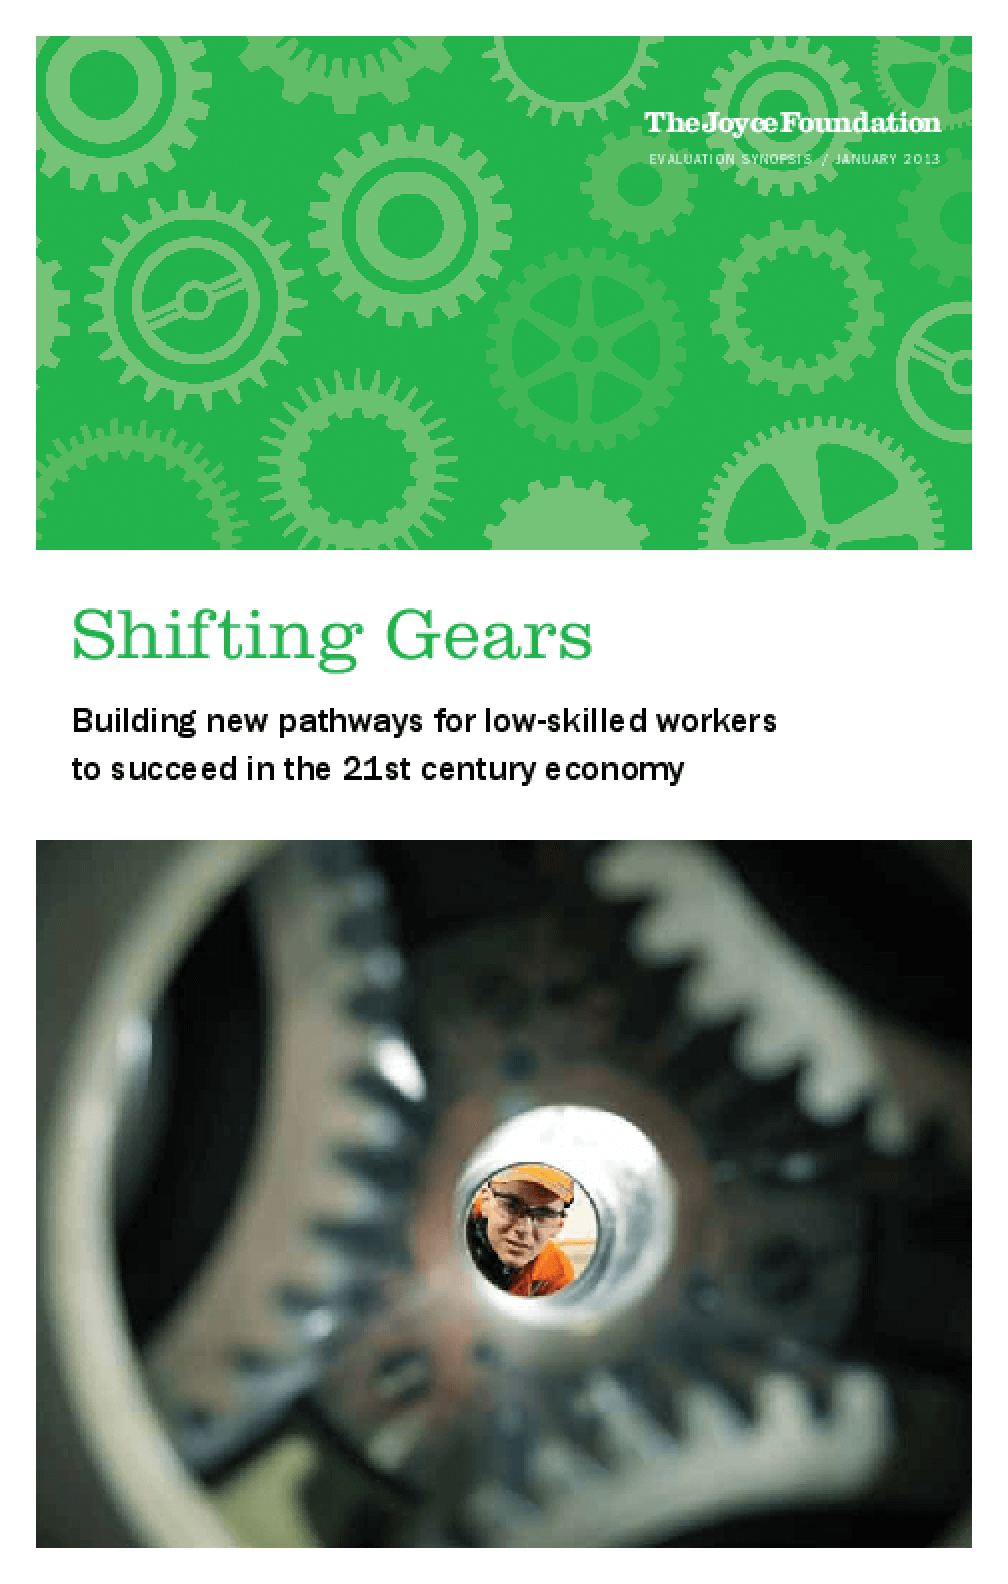 Shifting Gears: Building New Pathways for Low-Skilled Workers to Succeed in the 21st Century Economy